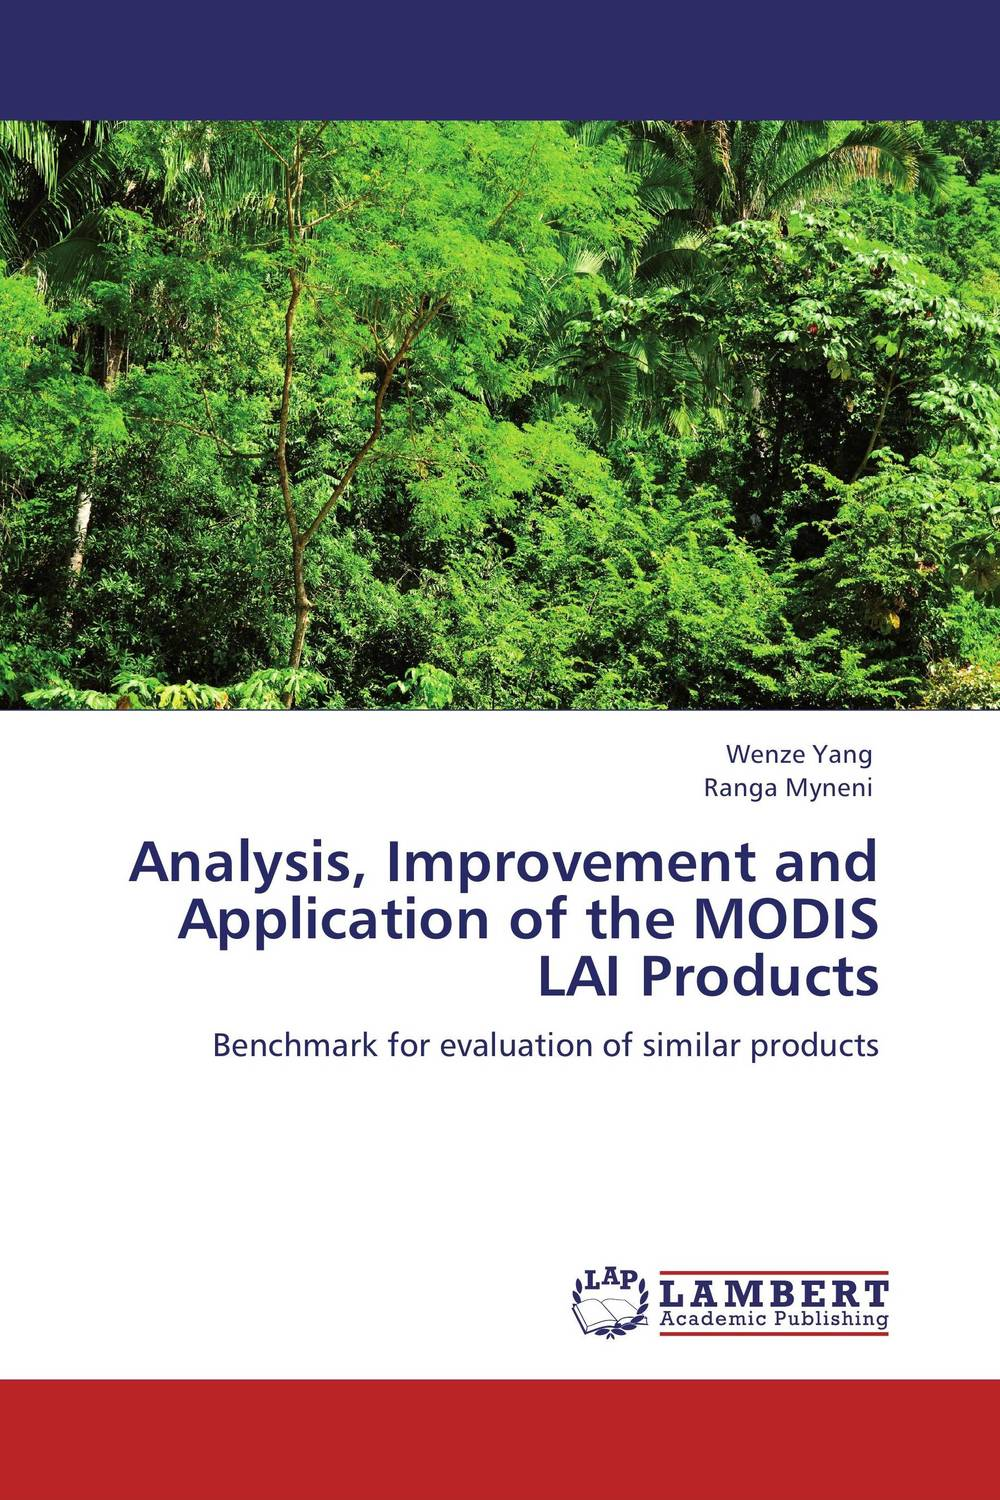 Analysis, Improvement and Application of the MODIS LAI Products the application of global ethics to solve local improprieties